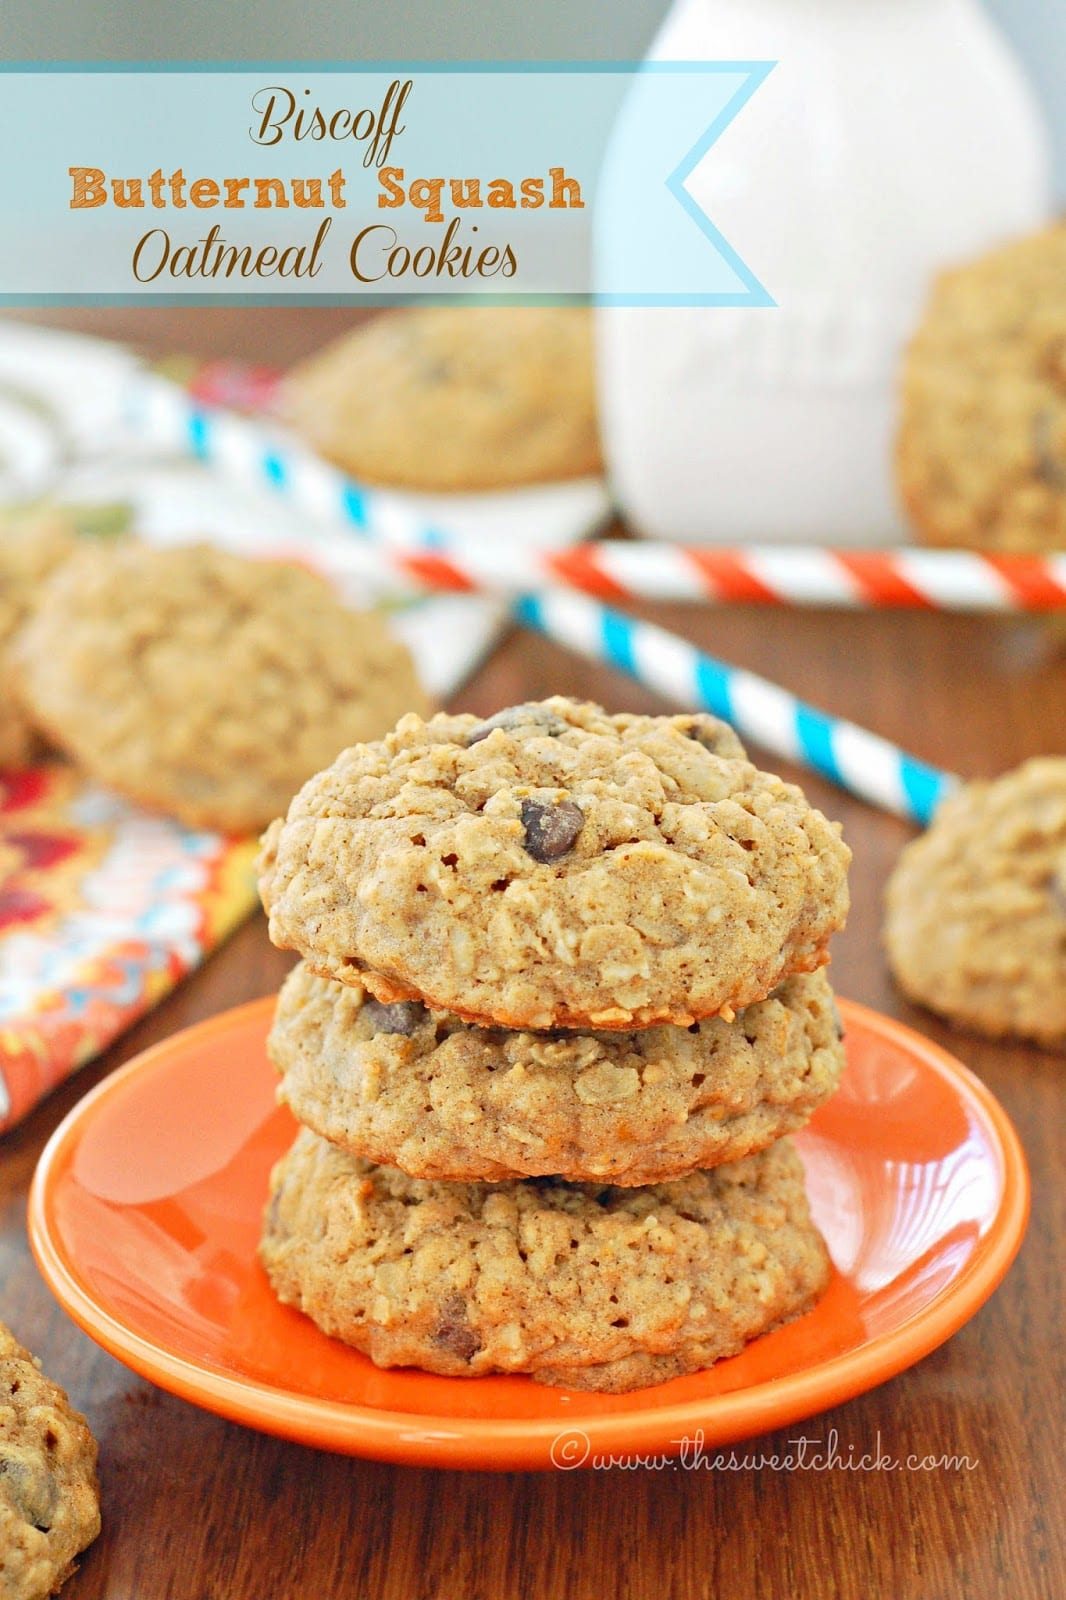 The Sweet Chick  Biscoff Butternut Squash Oatmeal Cookies